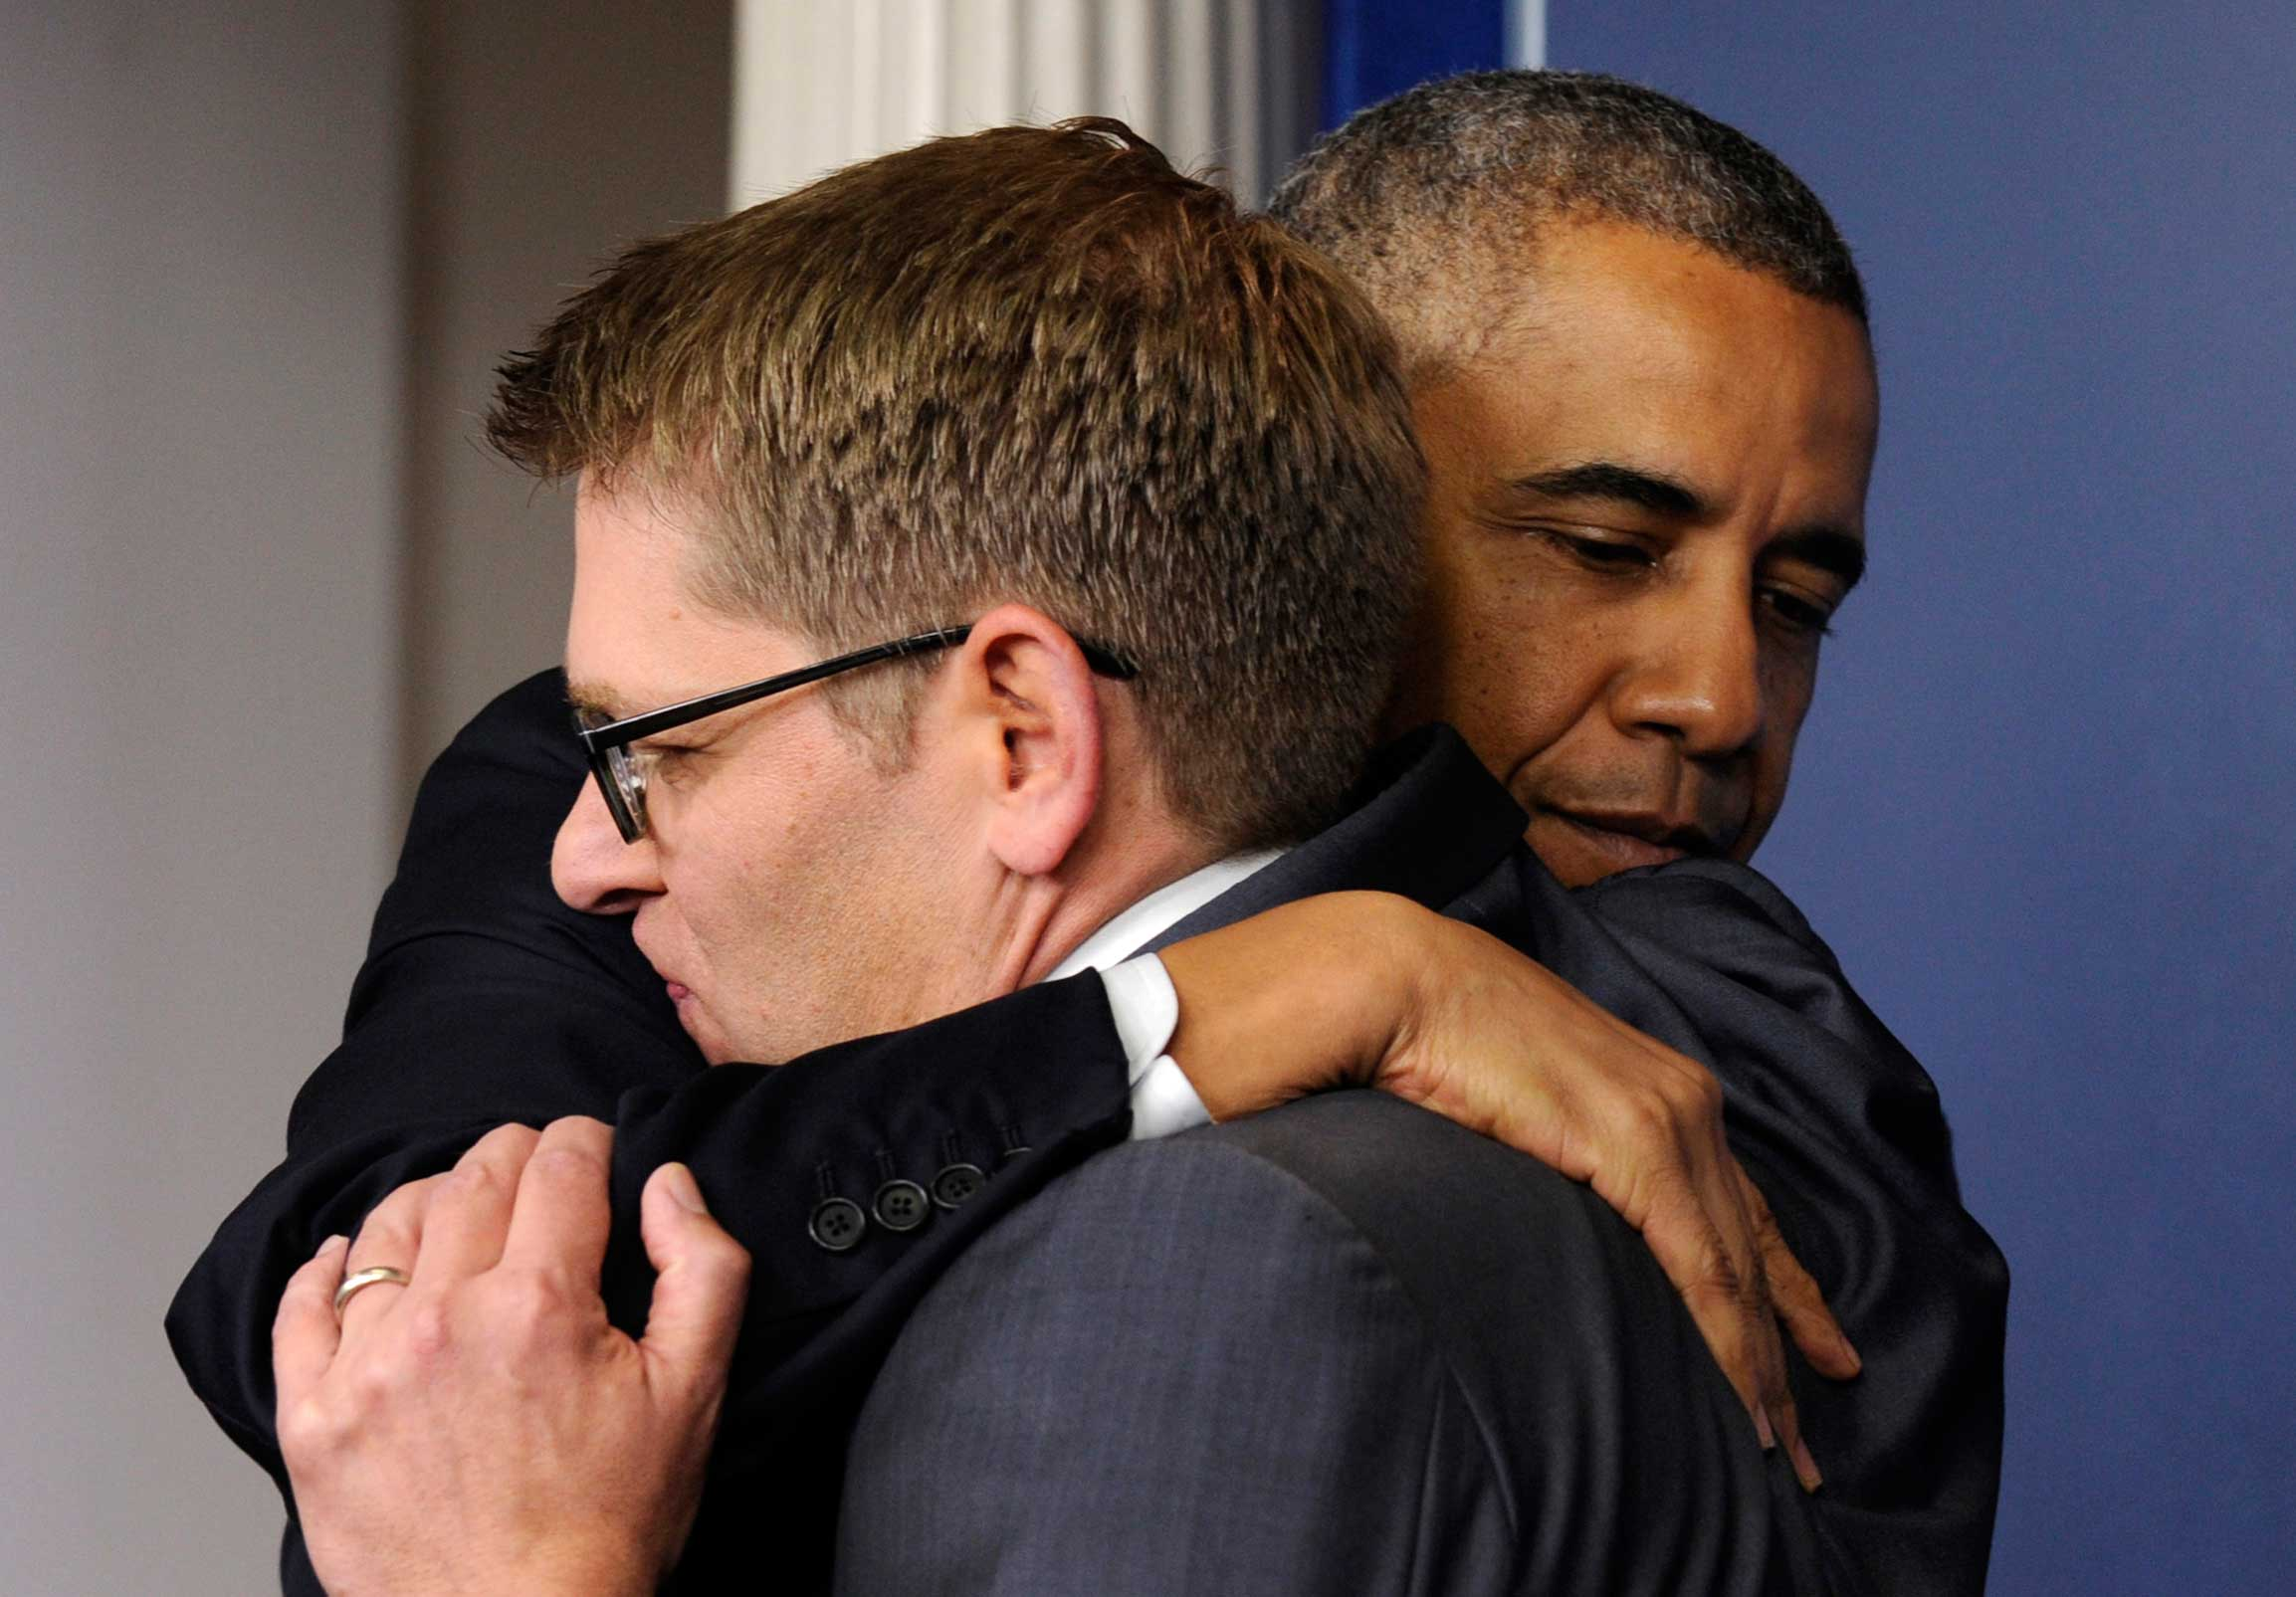 This hug between Obama and former Press Secretary Jay Carney may have been commemorating Carney's departure, but all people will remember is its awkwardness.